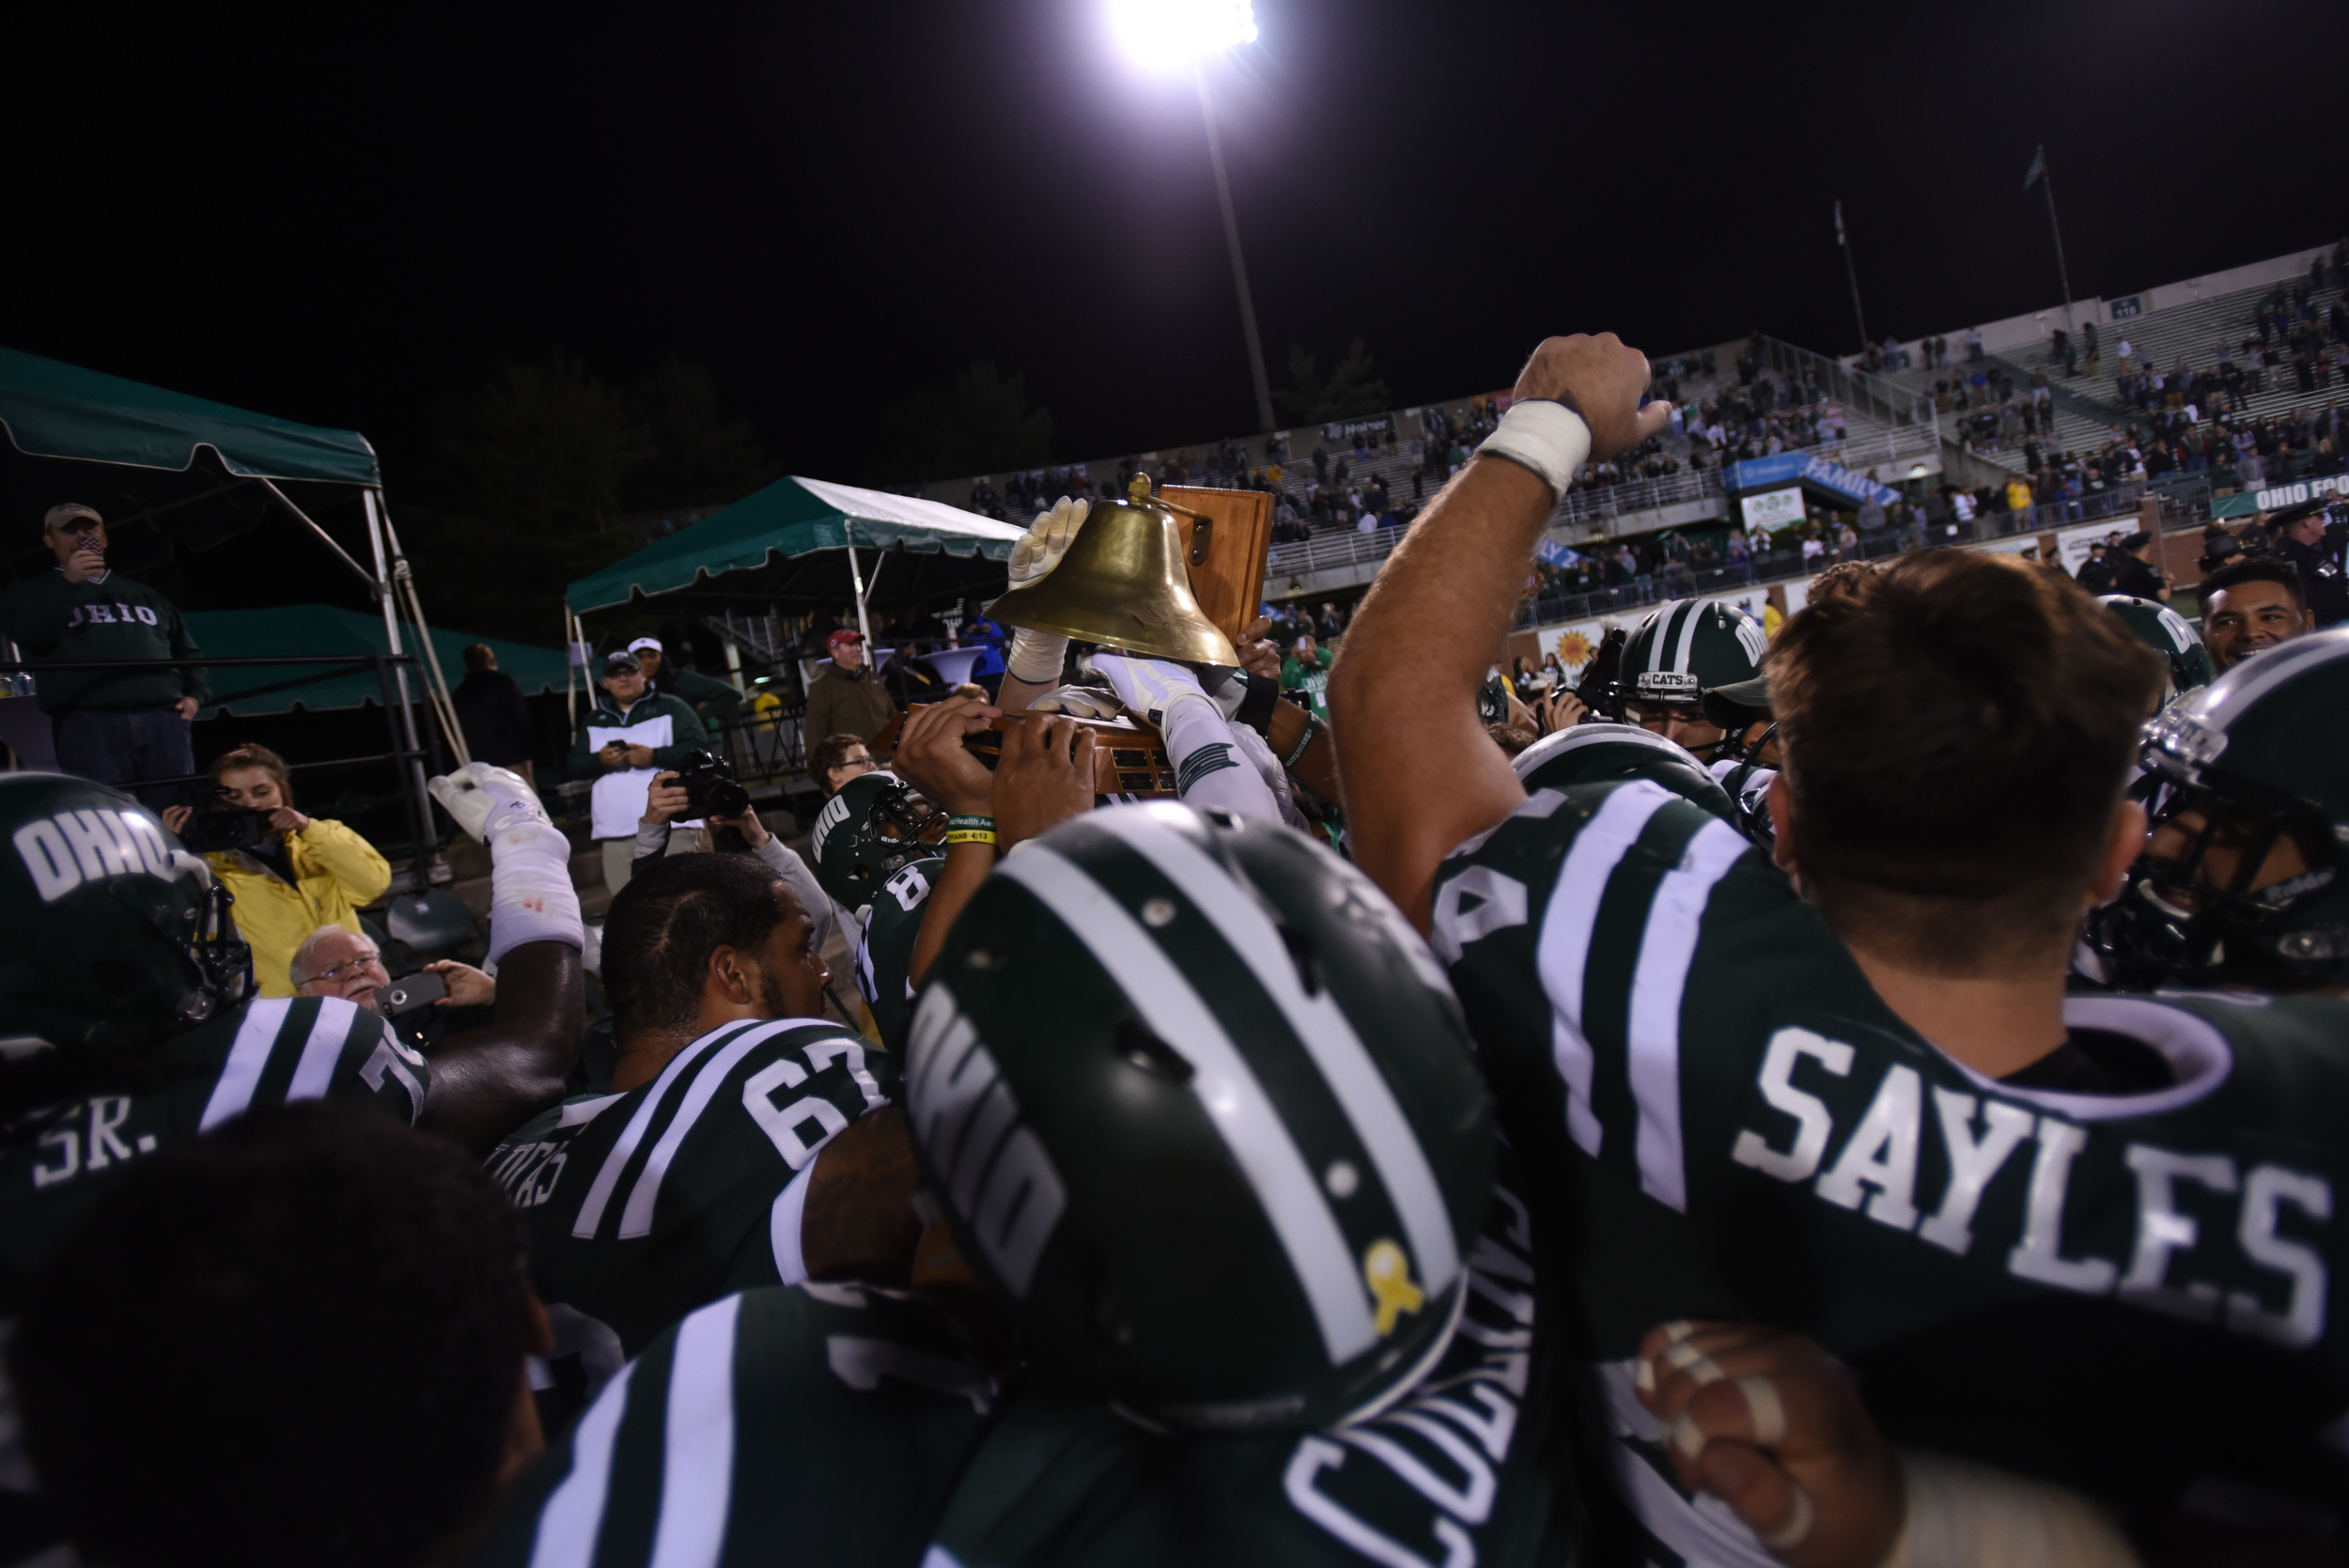 """Members of the Ohio Bobcats Football Team hoist the bell that they claimed after a 21-10 win over Marshall on September 12, 2015. The """"Battle for the Bell"""" game originated between the two schools in 1905. ©2015 Sarah Stier 